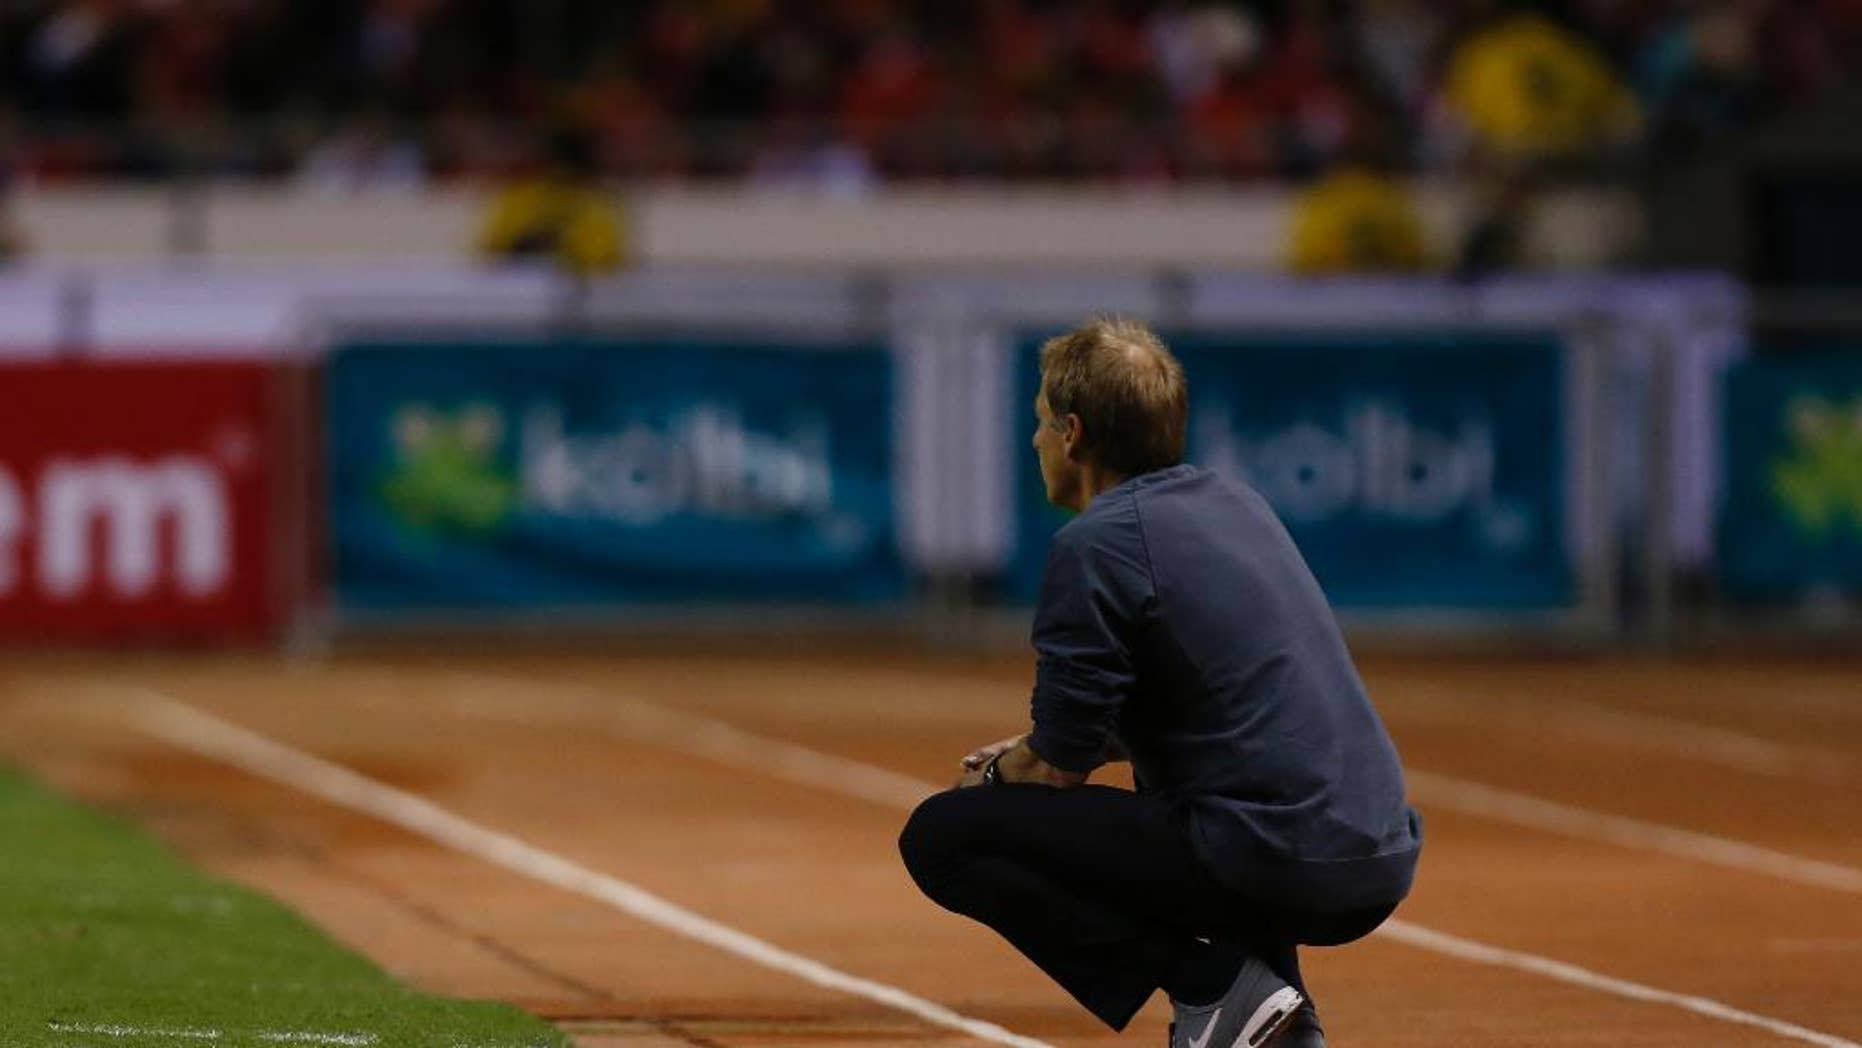 United States coach Jurgen Klinsmann watches the game on the sideline during a 2018 World Cup qualifying soccer match against Costa Rica, in San Jose, Costa Rica, Tuesday, Nov. 15, 2016. United States lost 4-0 to Costa Rica. (AP Photo/Moises Castillo)